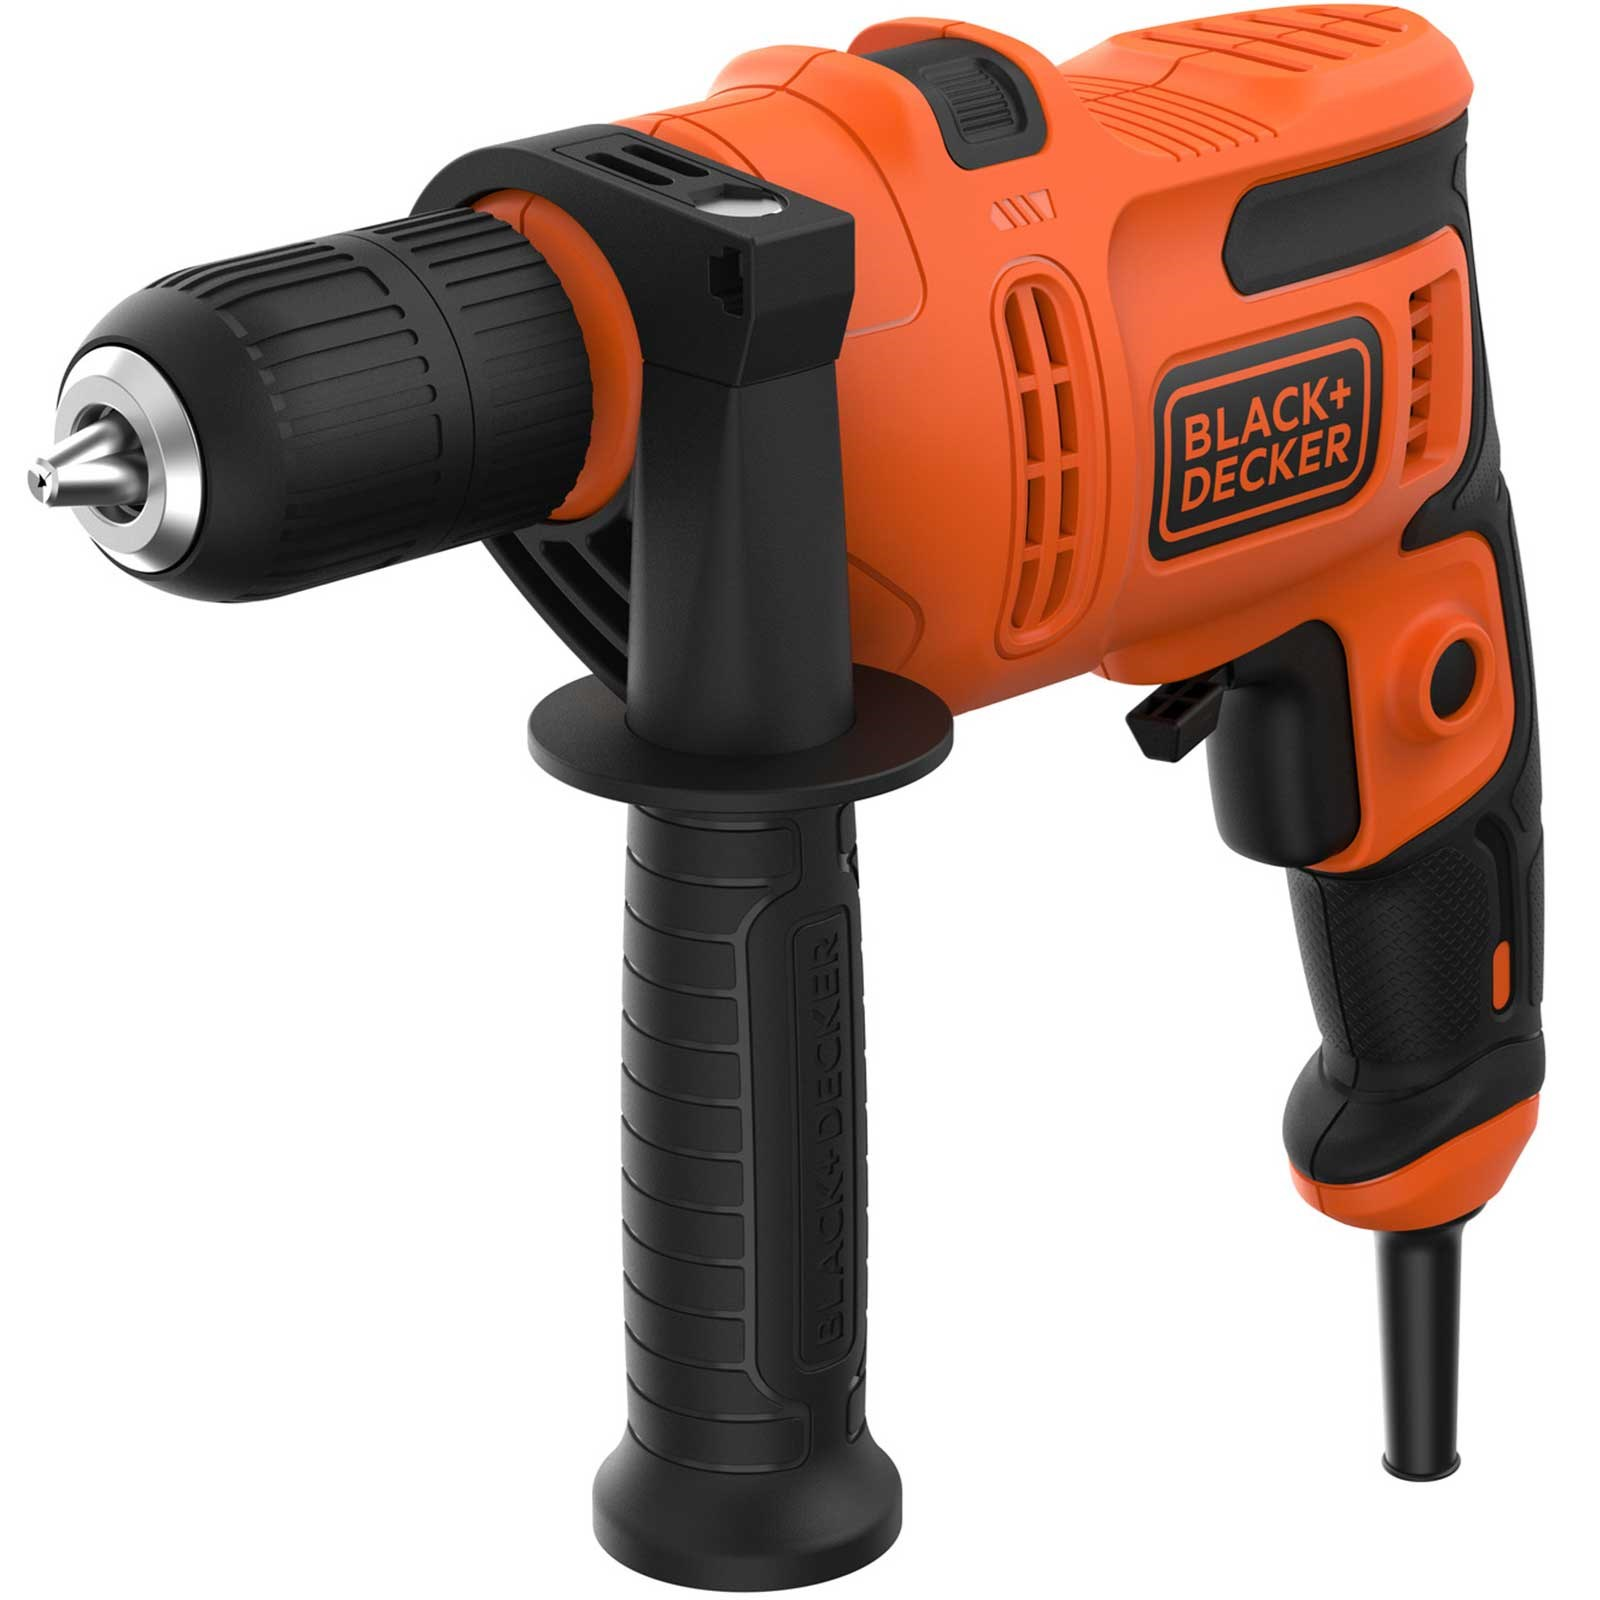 BLACK & DECKER - 500W HAMMER DRILL WITH 8 PIECE DRILL BIT SET - XMS19BD500WD